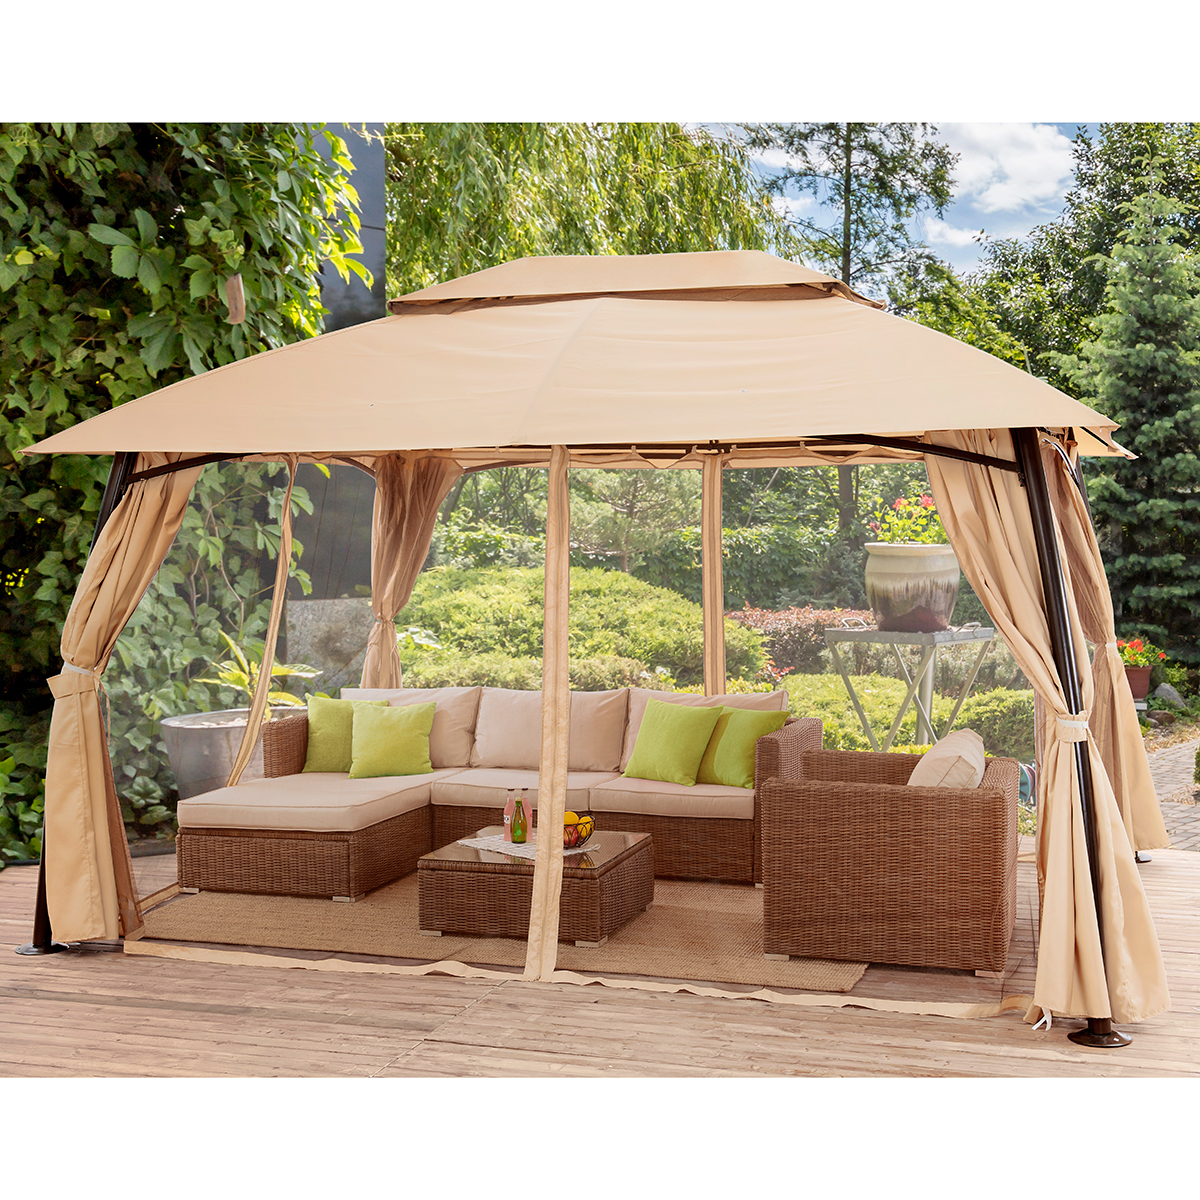 premium selection 56aee 96d89 Details about outdoor home 10' x 13' backyard garden awnings Patio Gazebo  canopy tent netting